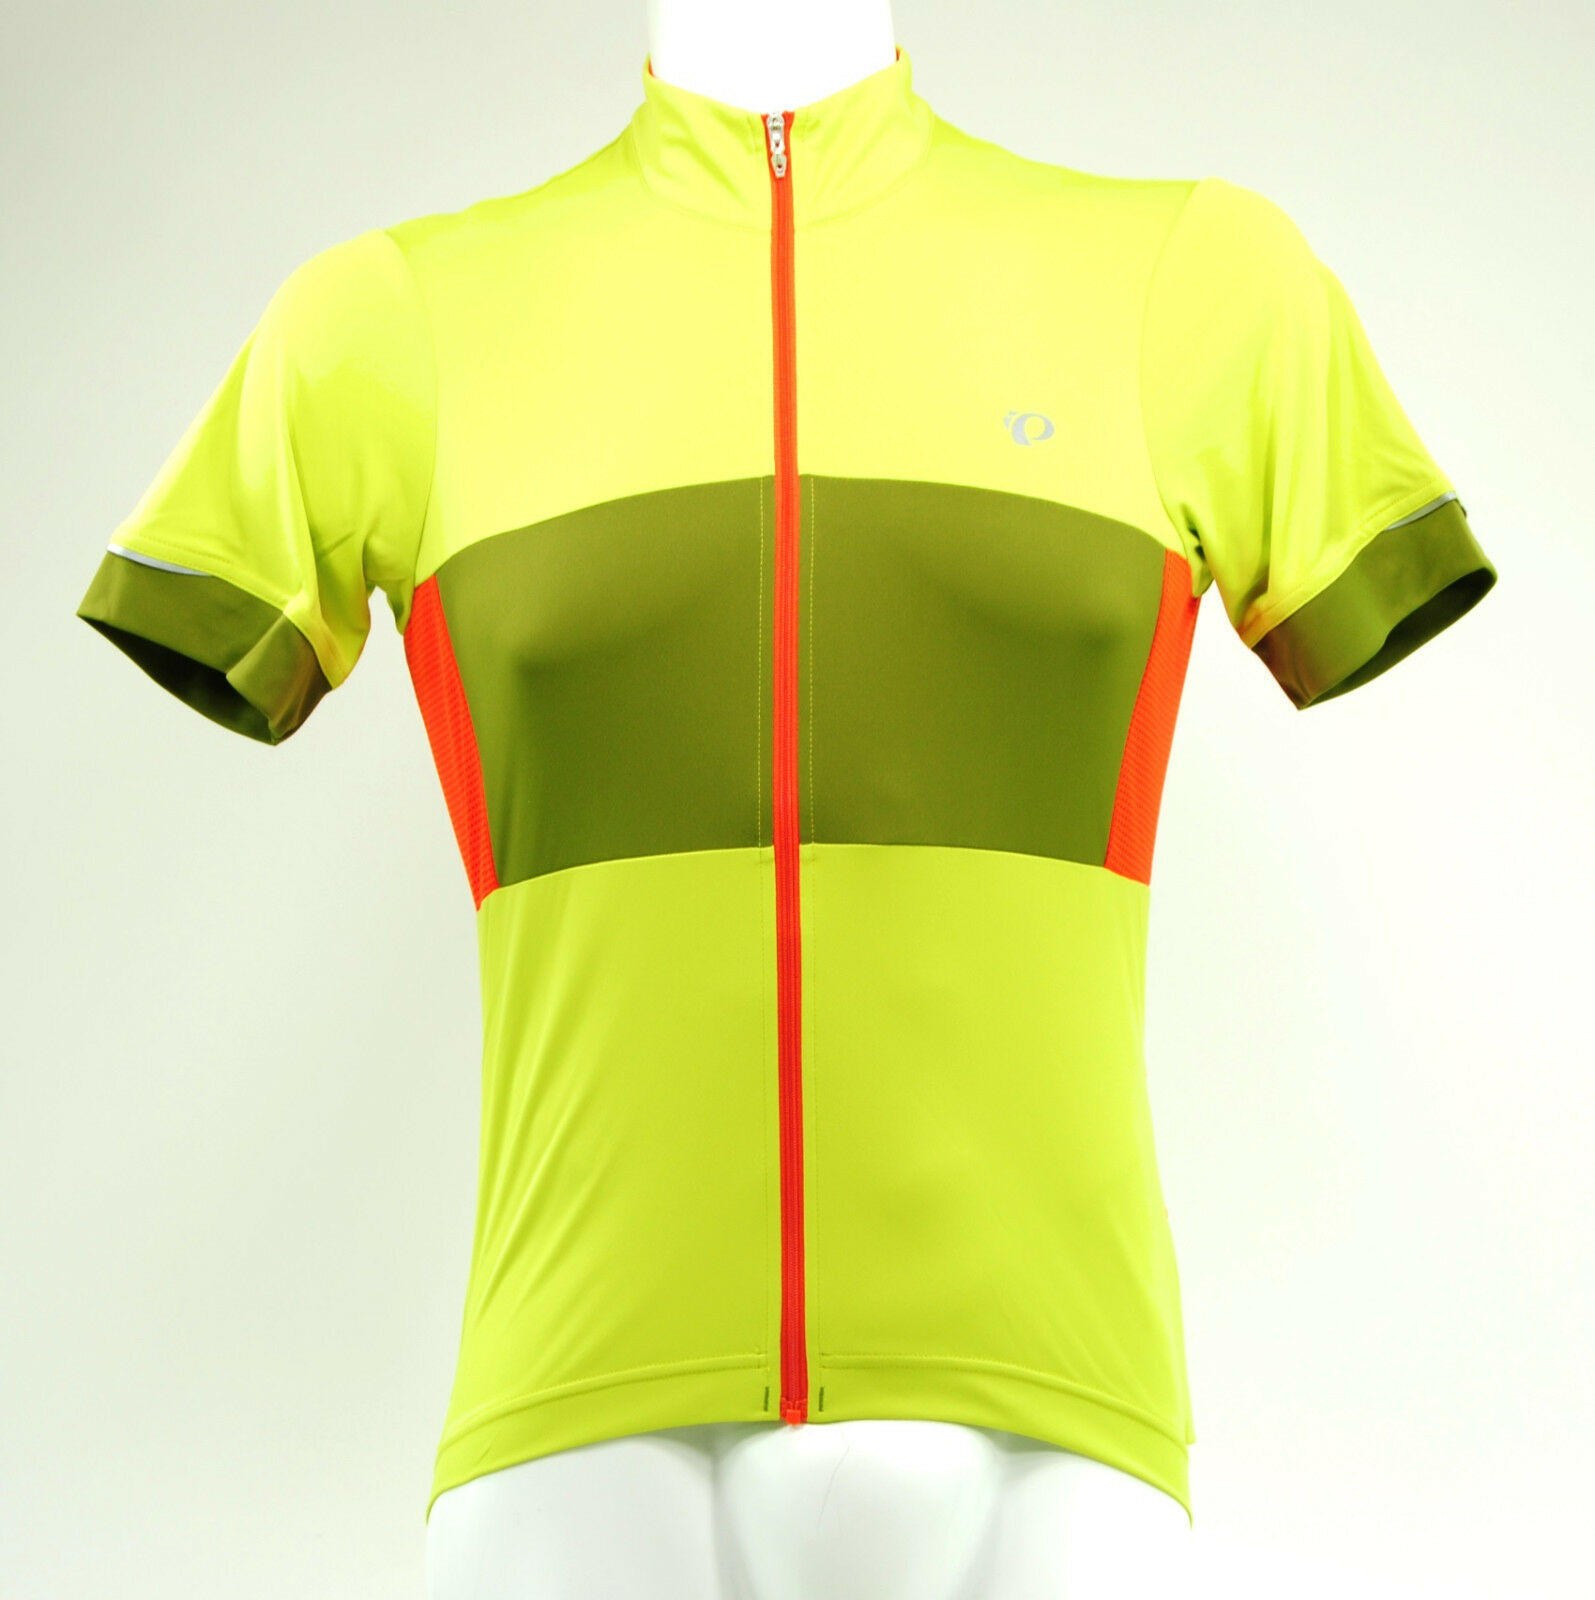 Pearl Izumi Elite Escape Semi Form Cycling Jersey,  Citron Avocado, Small  order online